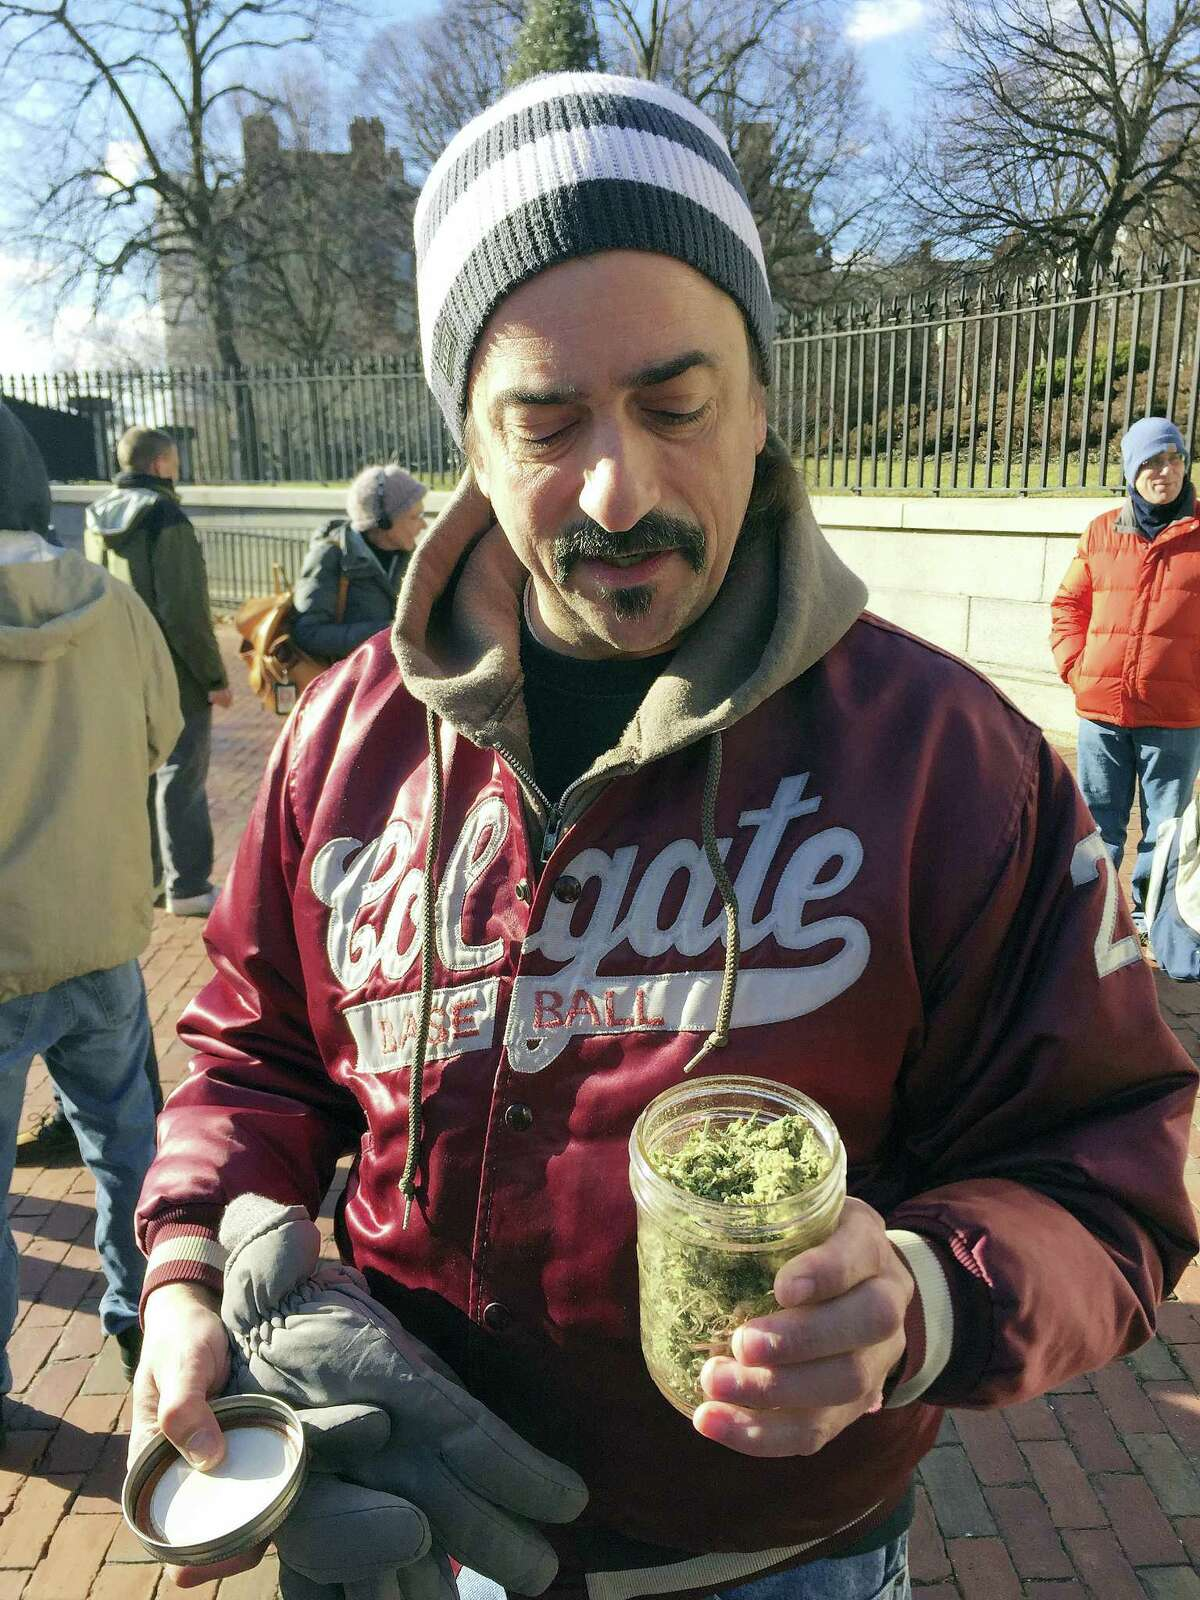 Keith Saunders, a marijuana activist from Scituate, Mass., holds a jar that he says contains just under an ounce of pot, now legal in Massachusetts. Advocates gathered in front of the Massachusetts Statehouse Thursday to celebrate the voter-approved law legalizing the recreational use of marijuana that took effect at midnight Thursday.